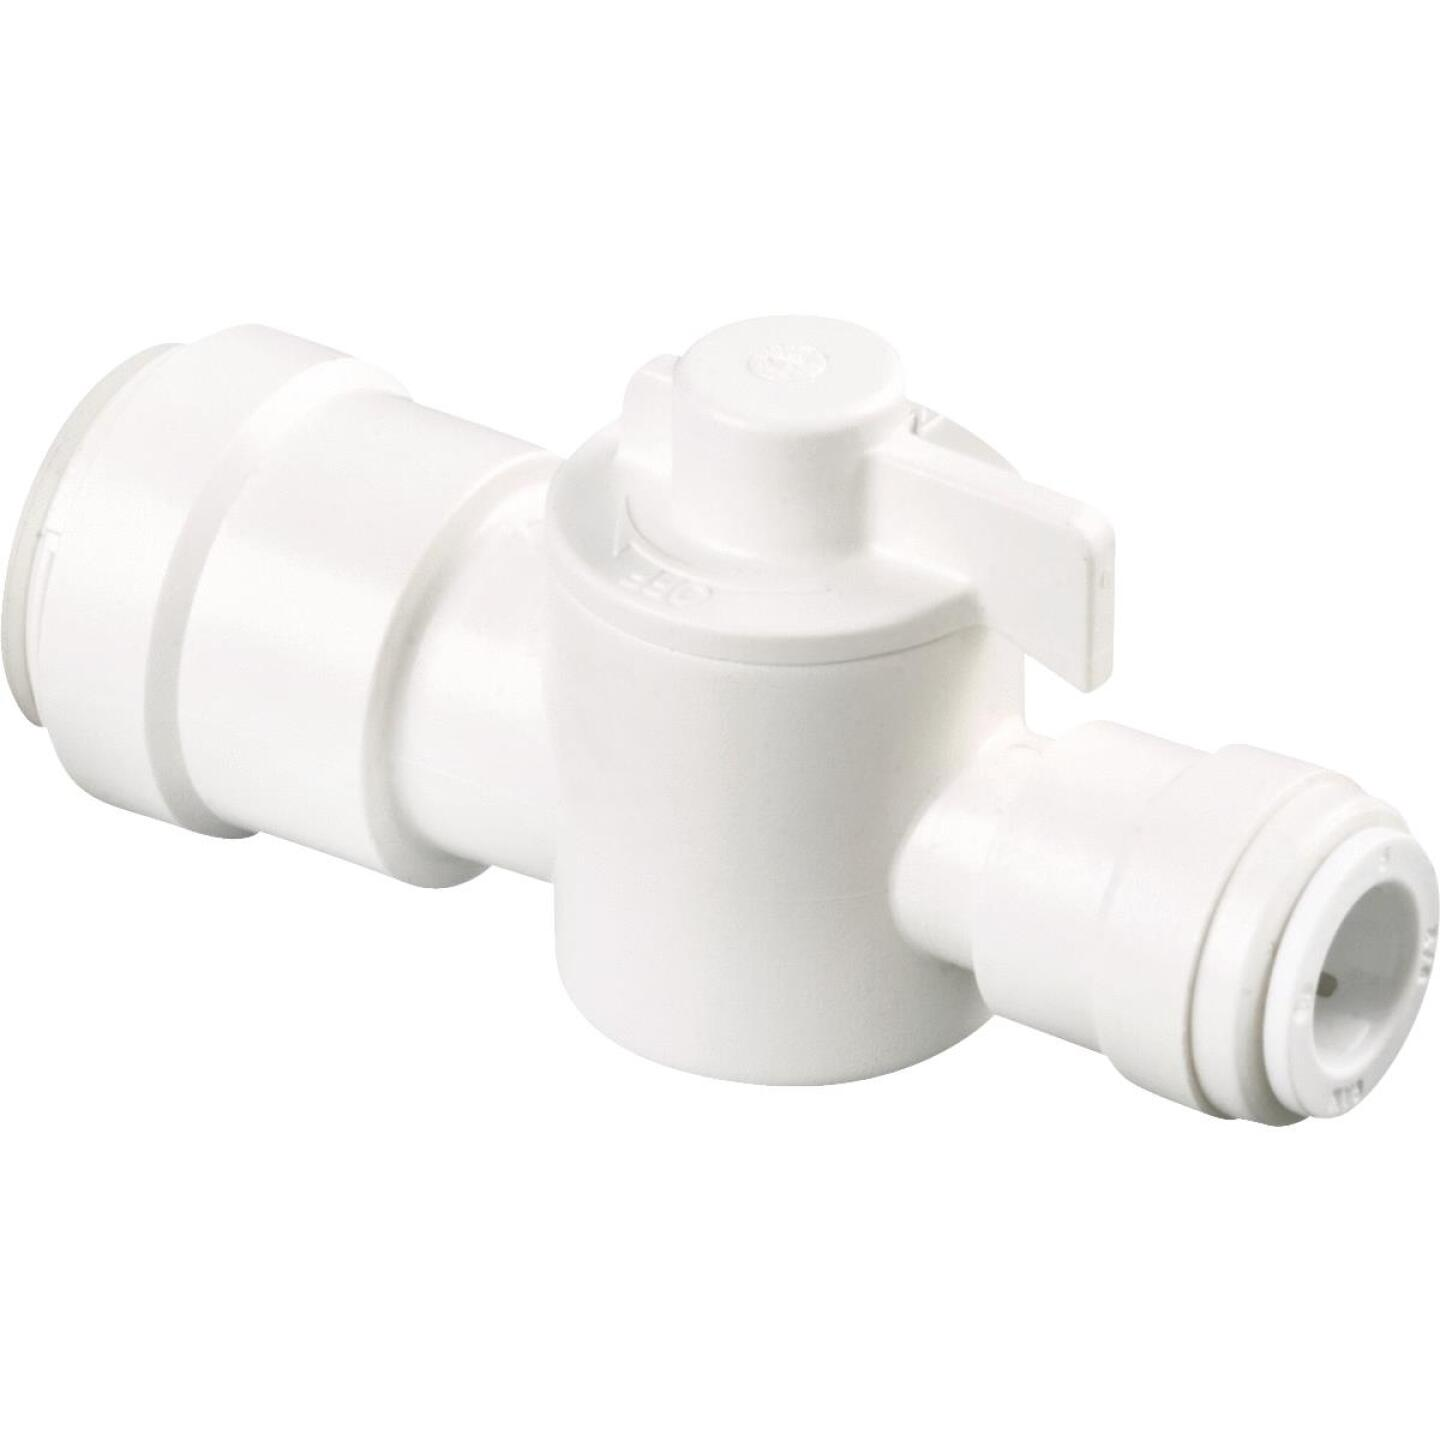 Watts 1/2 In. CTS X 3/8 In. CTS Plastic Stop Valve Image 2